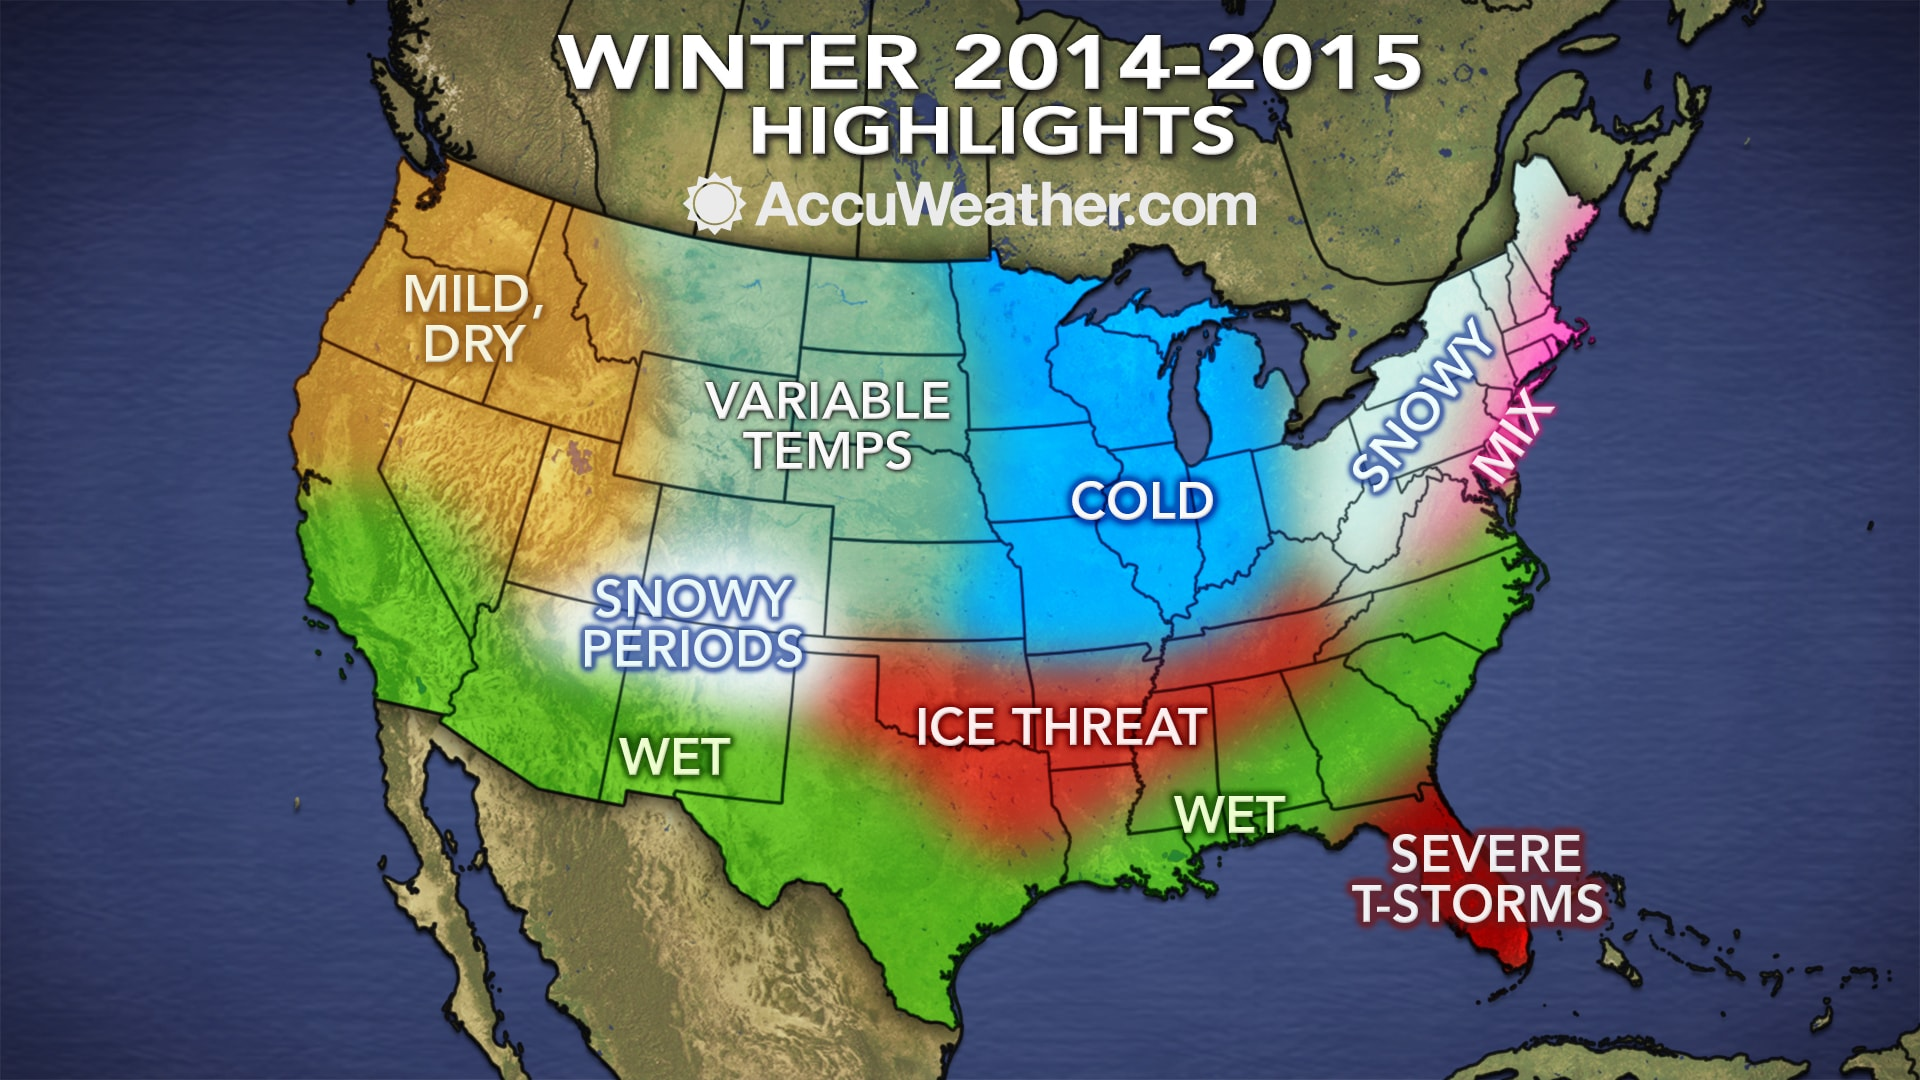 Highlights of the Accuweather winter outlook. (Accuweather.com)